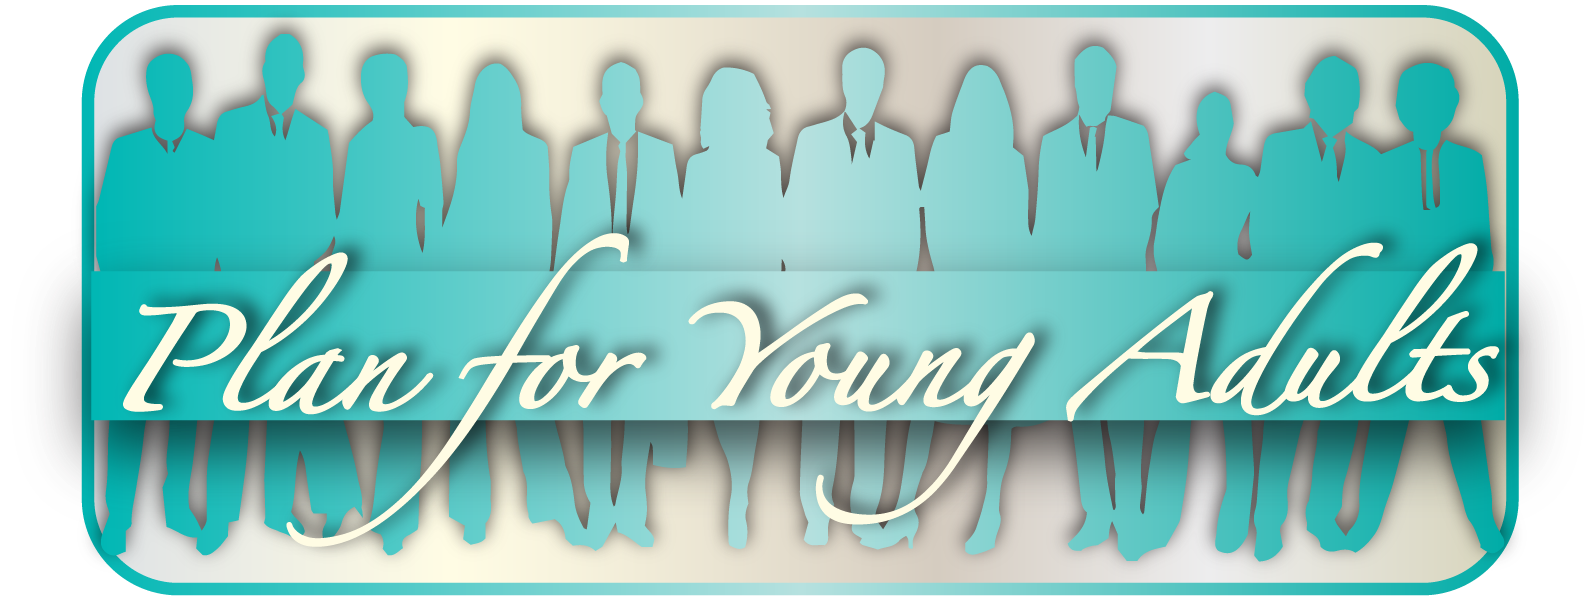 Plan for Young Adult_Final_2.26.18.png